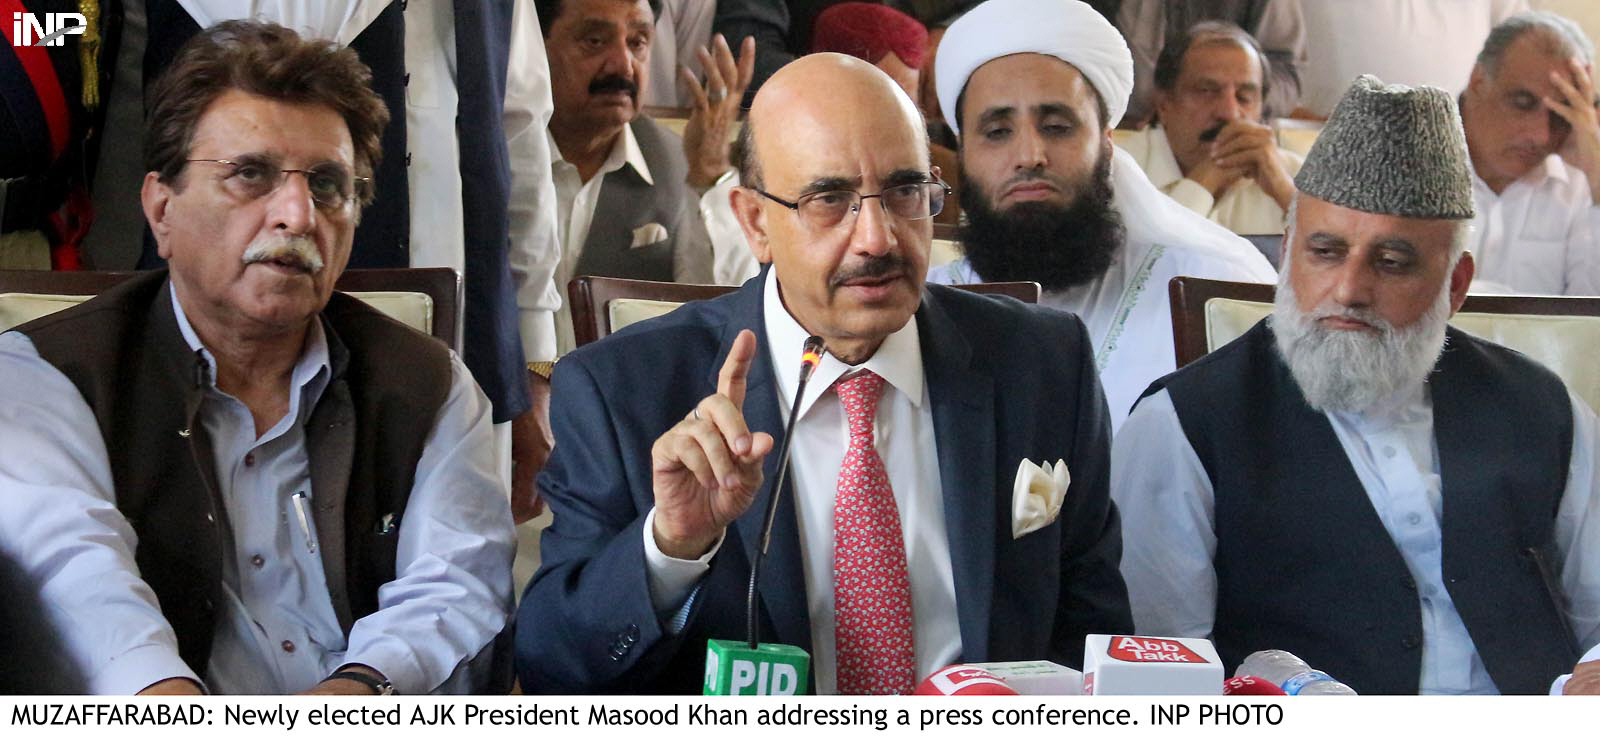 nawaz tasks ajk govt pml n to reach out to aphc in iok photo inp